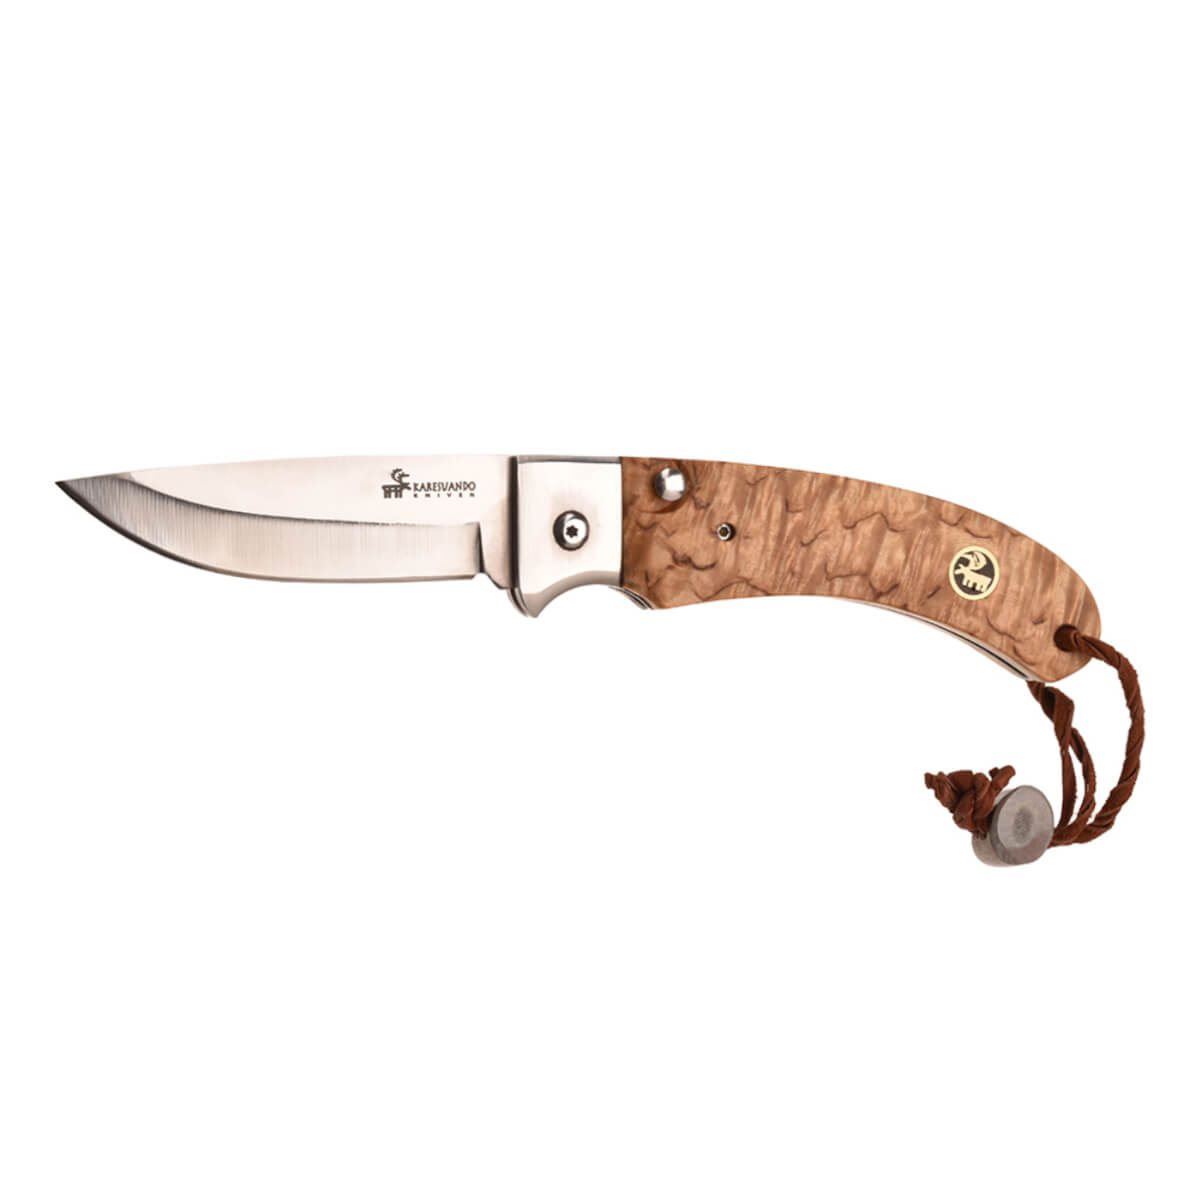 Karesuando Singi Pocket Knife